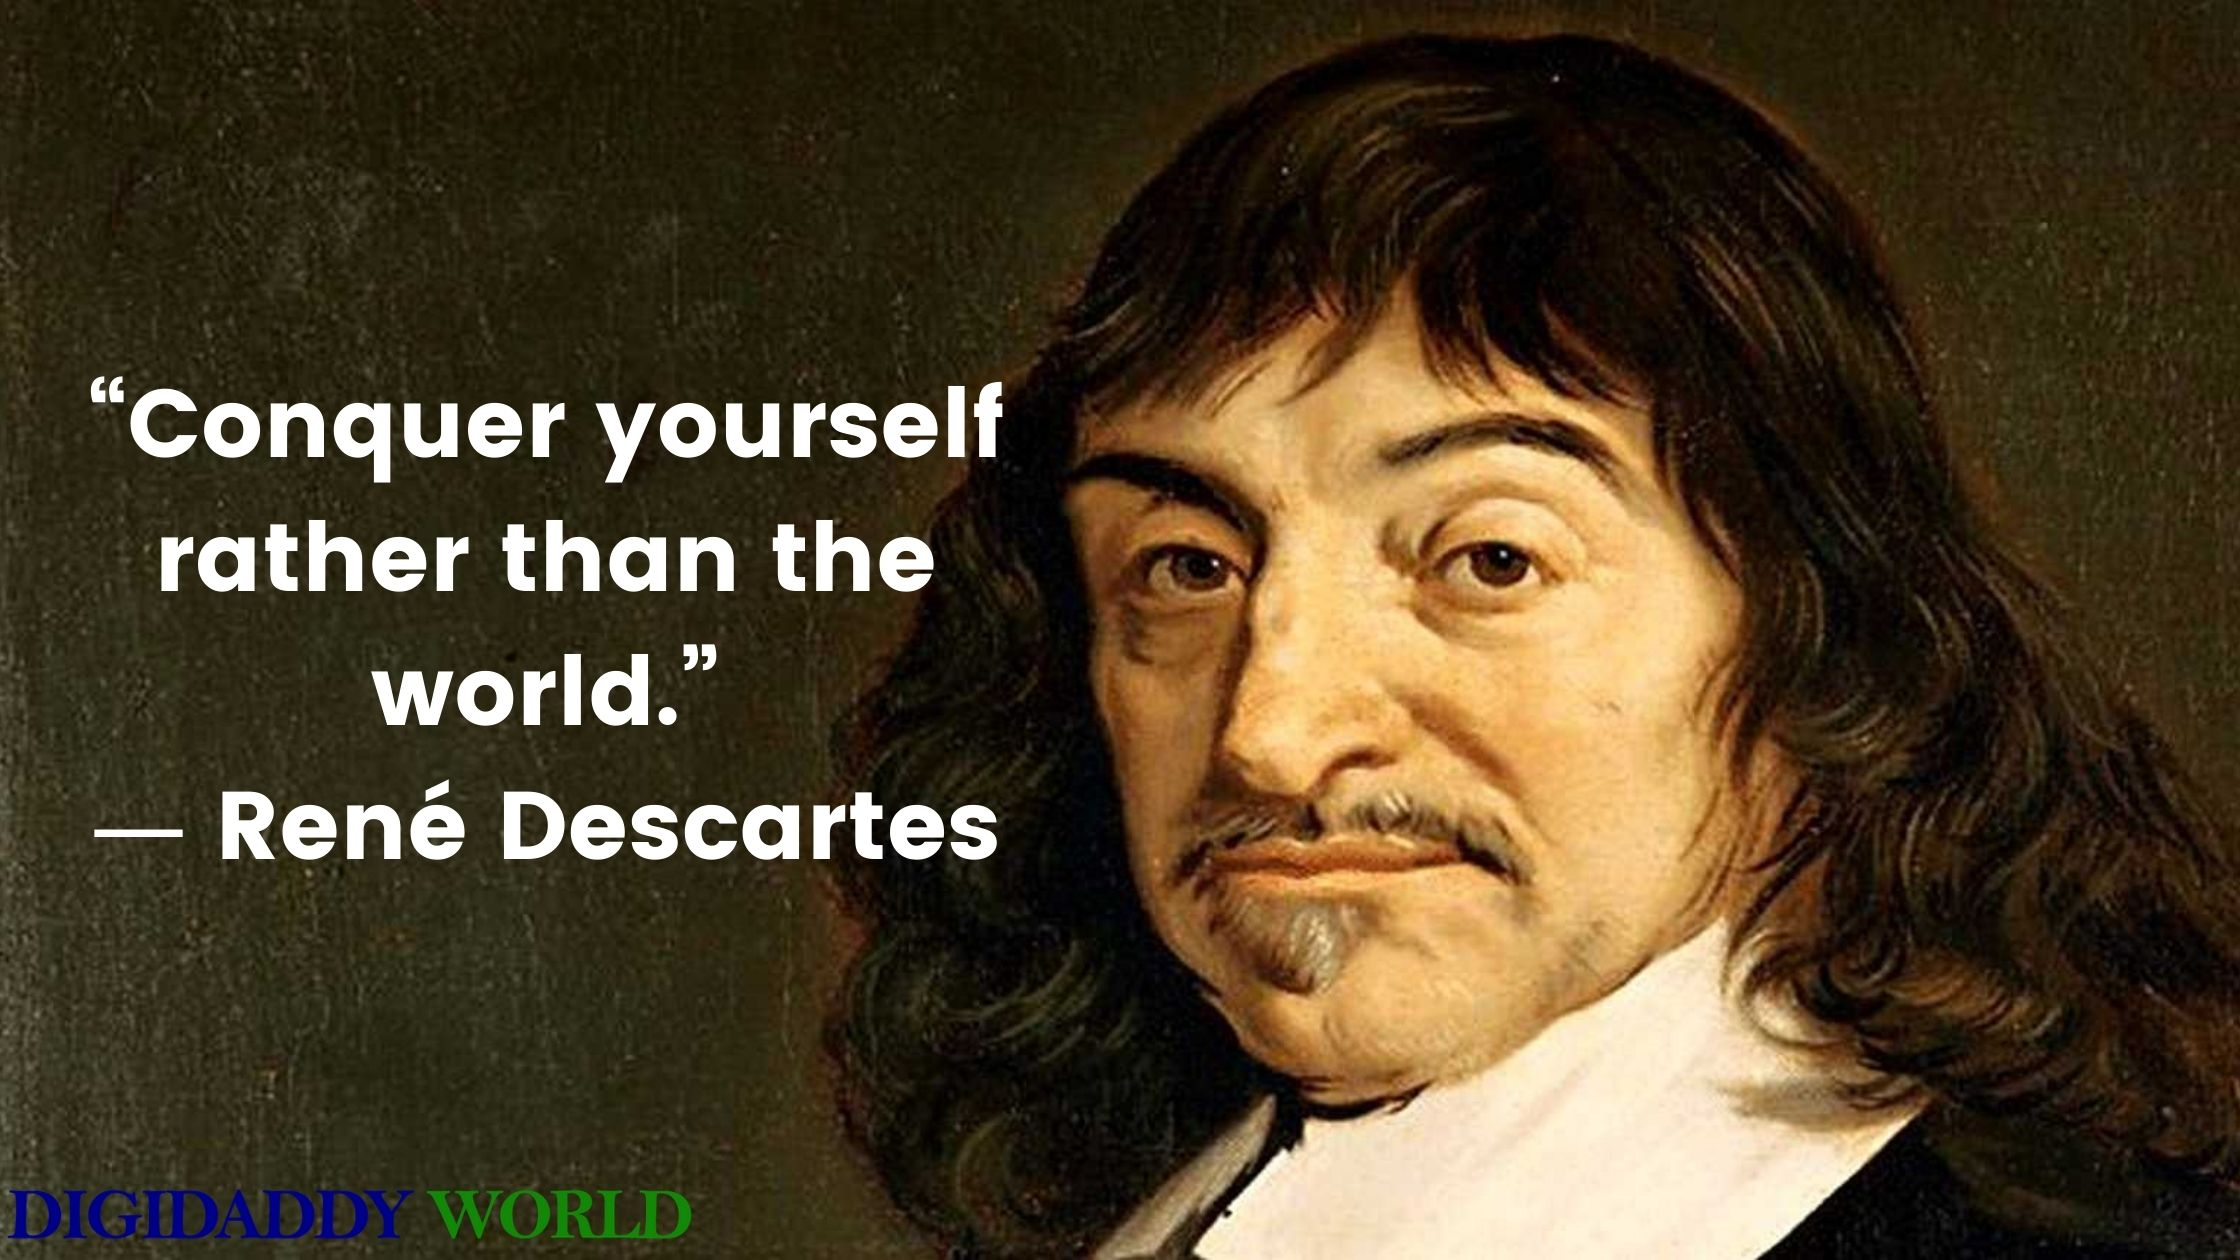 Famous Rene Descartes Quotes & Sayings About Self